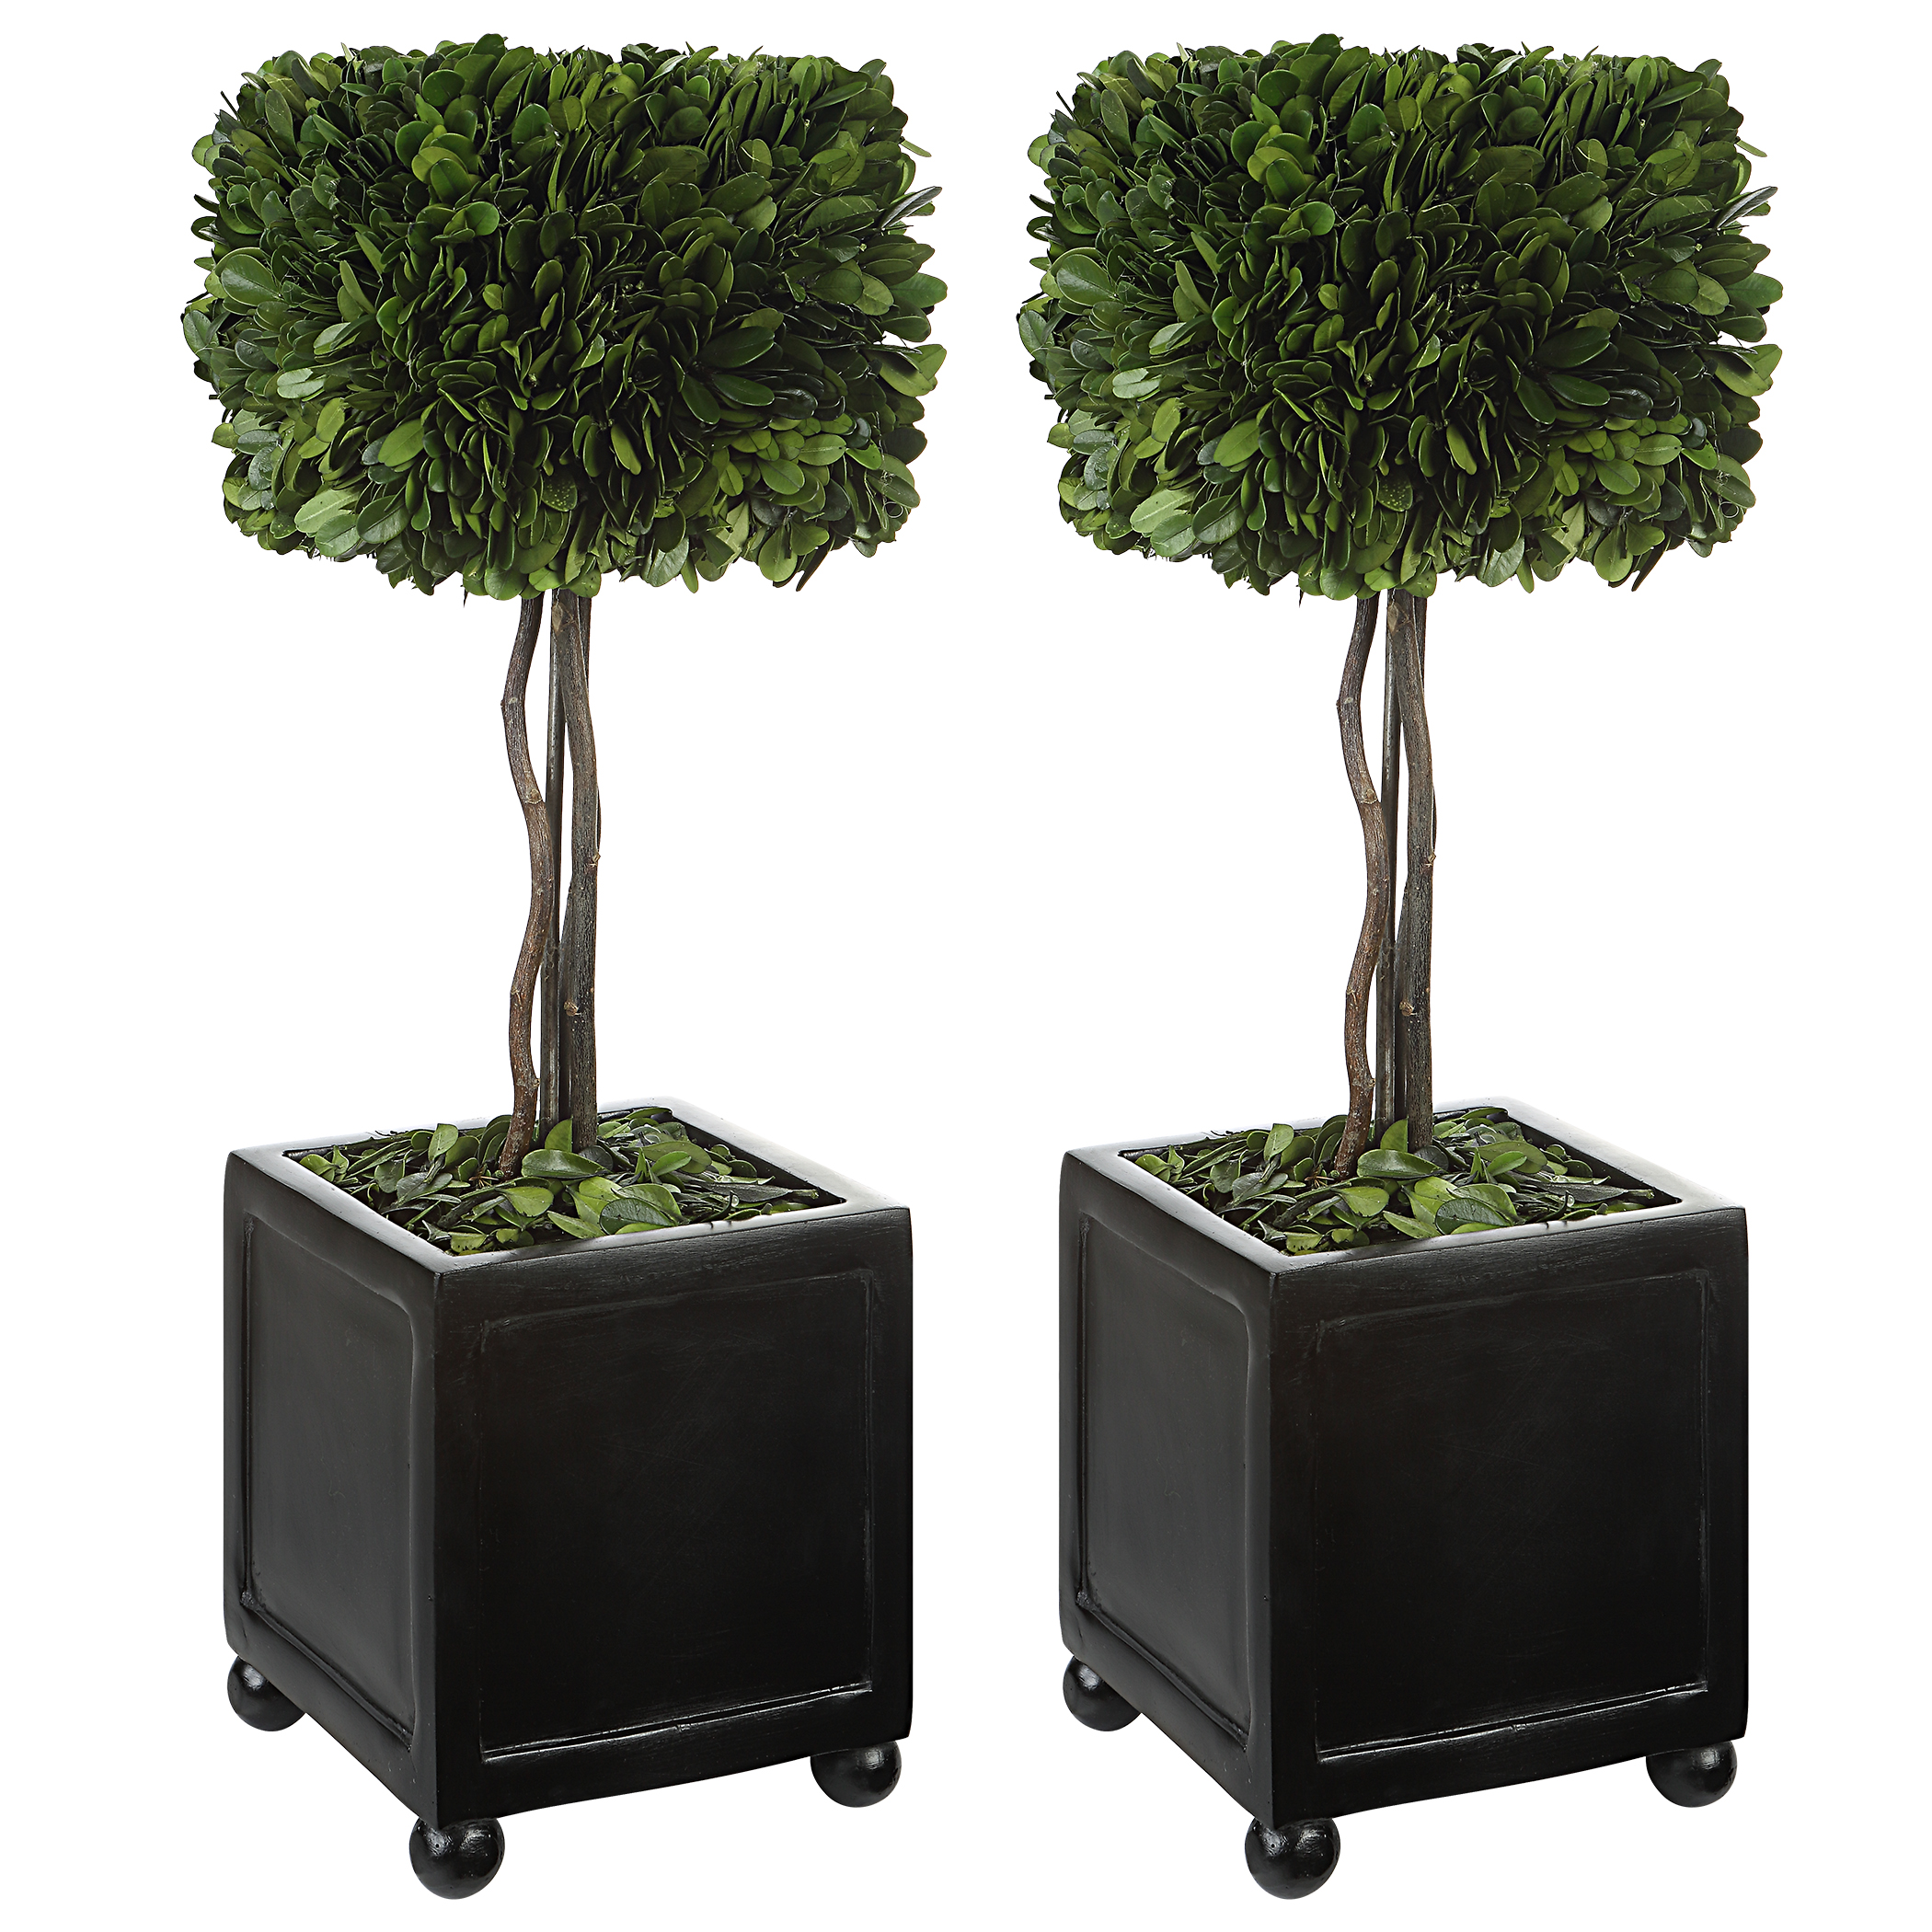 Uttermost Preserved Boxwood Square Topiaries, S/2